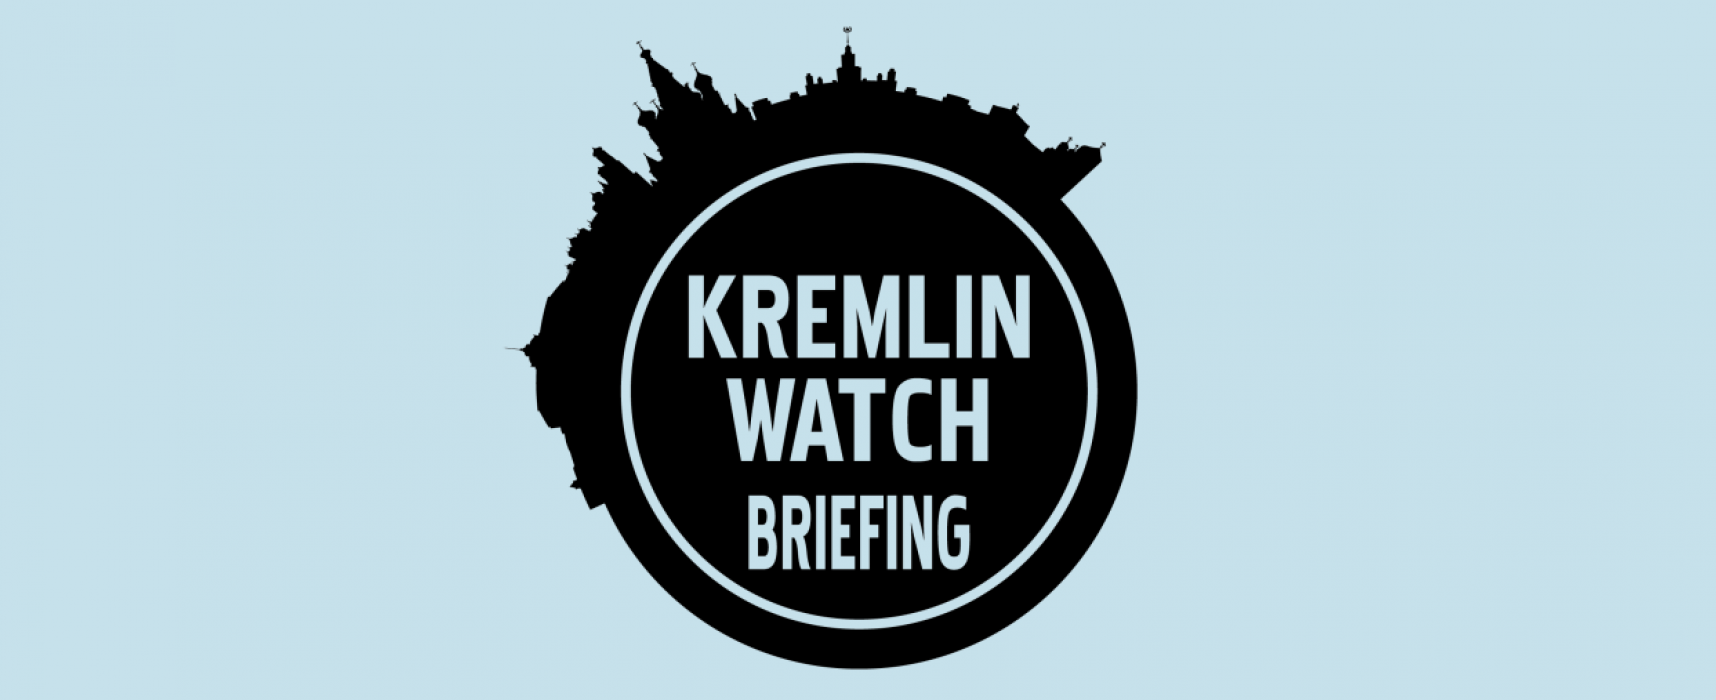 Kremlin Watch Briefing: France arrests intelligence officers, Sweden teaches the public how to defend against disinformation in case of conflict